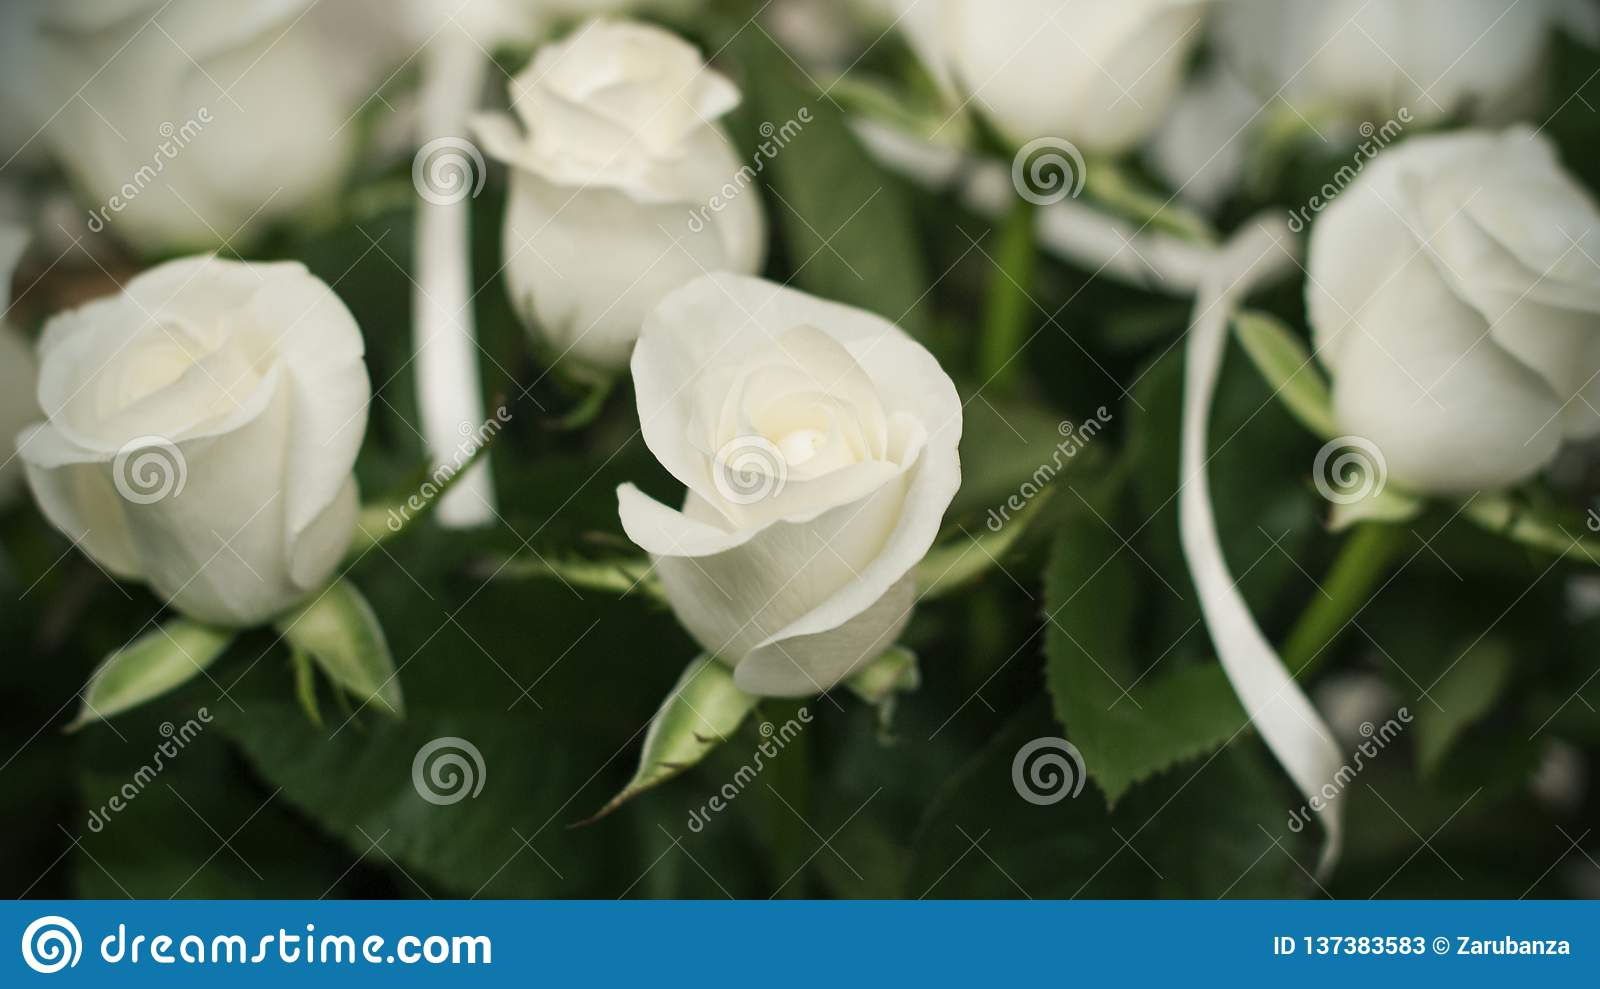 Soft full blown white roses as a background, clouse-up